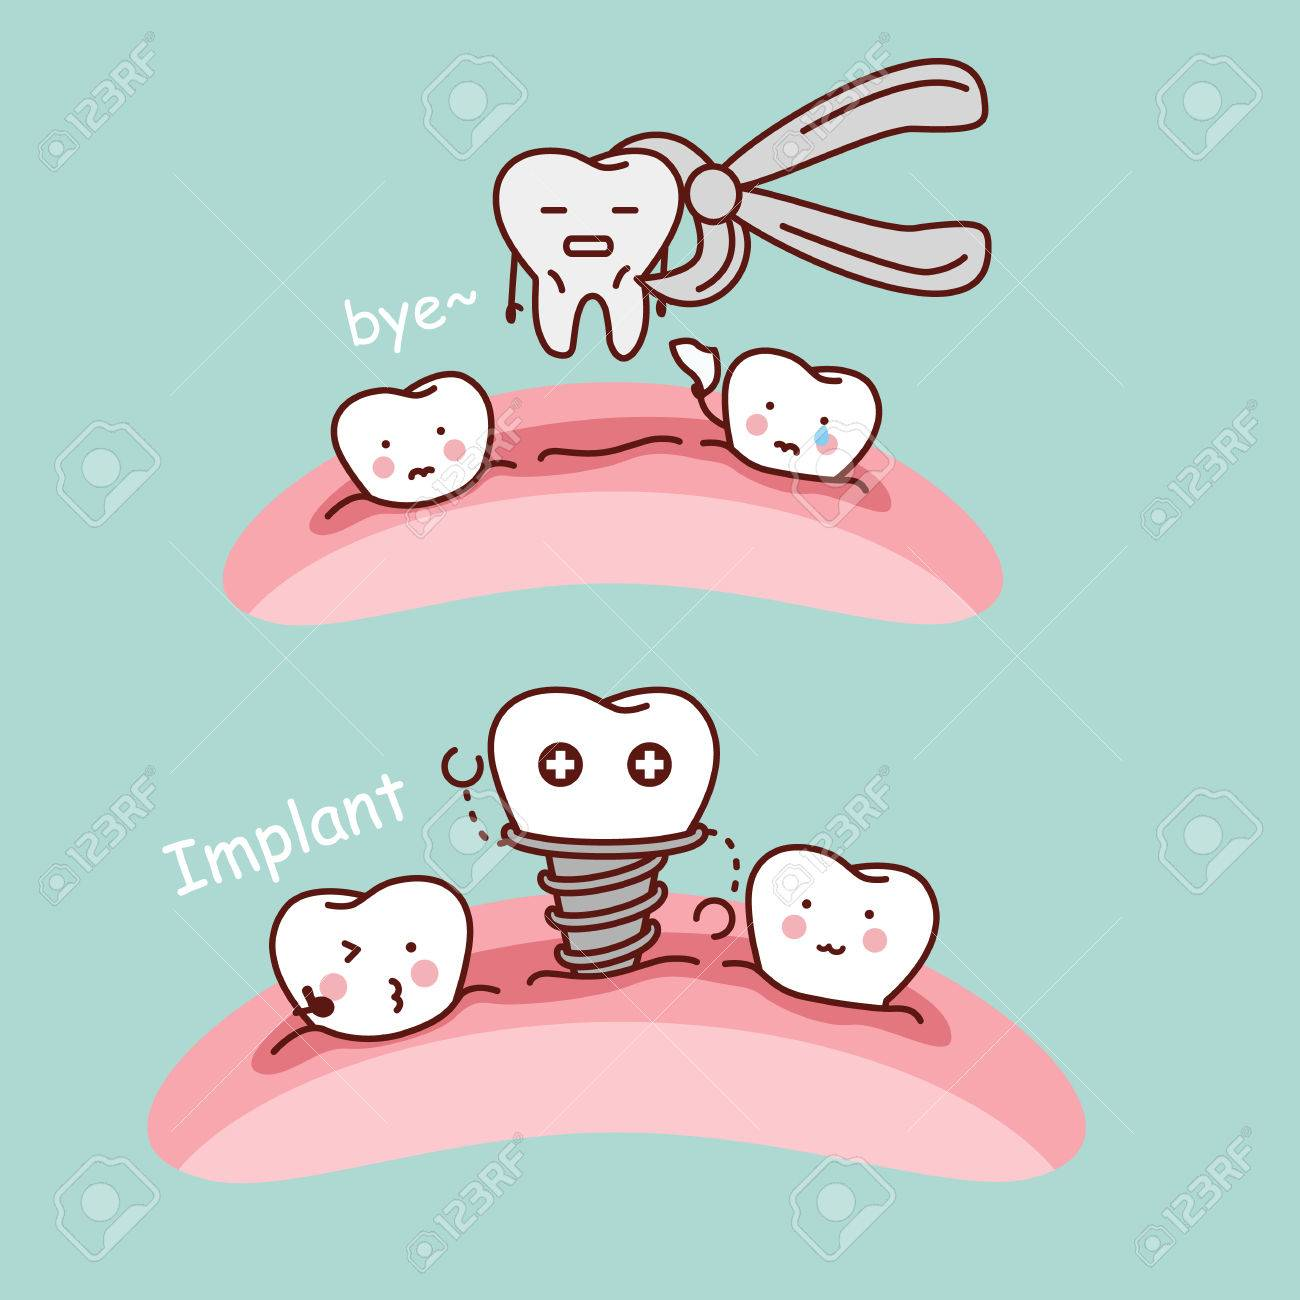 Cute Cartoon Tooth Extract And Implant Great For Health Dental Royalty Free Cliparts Vectors And Stock Illustration Image 69288566